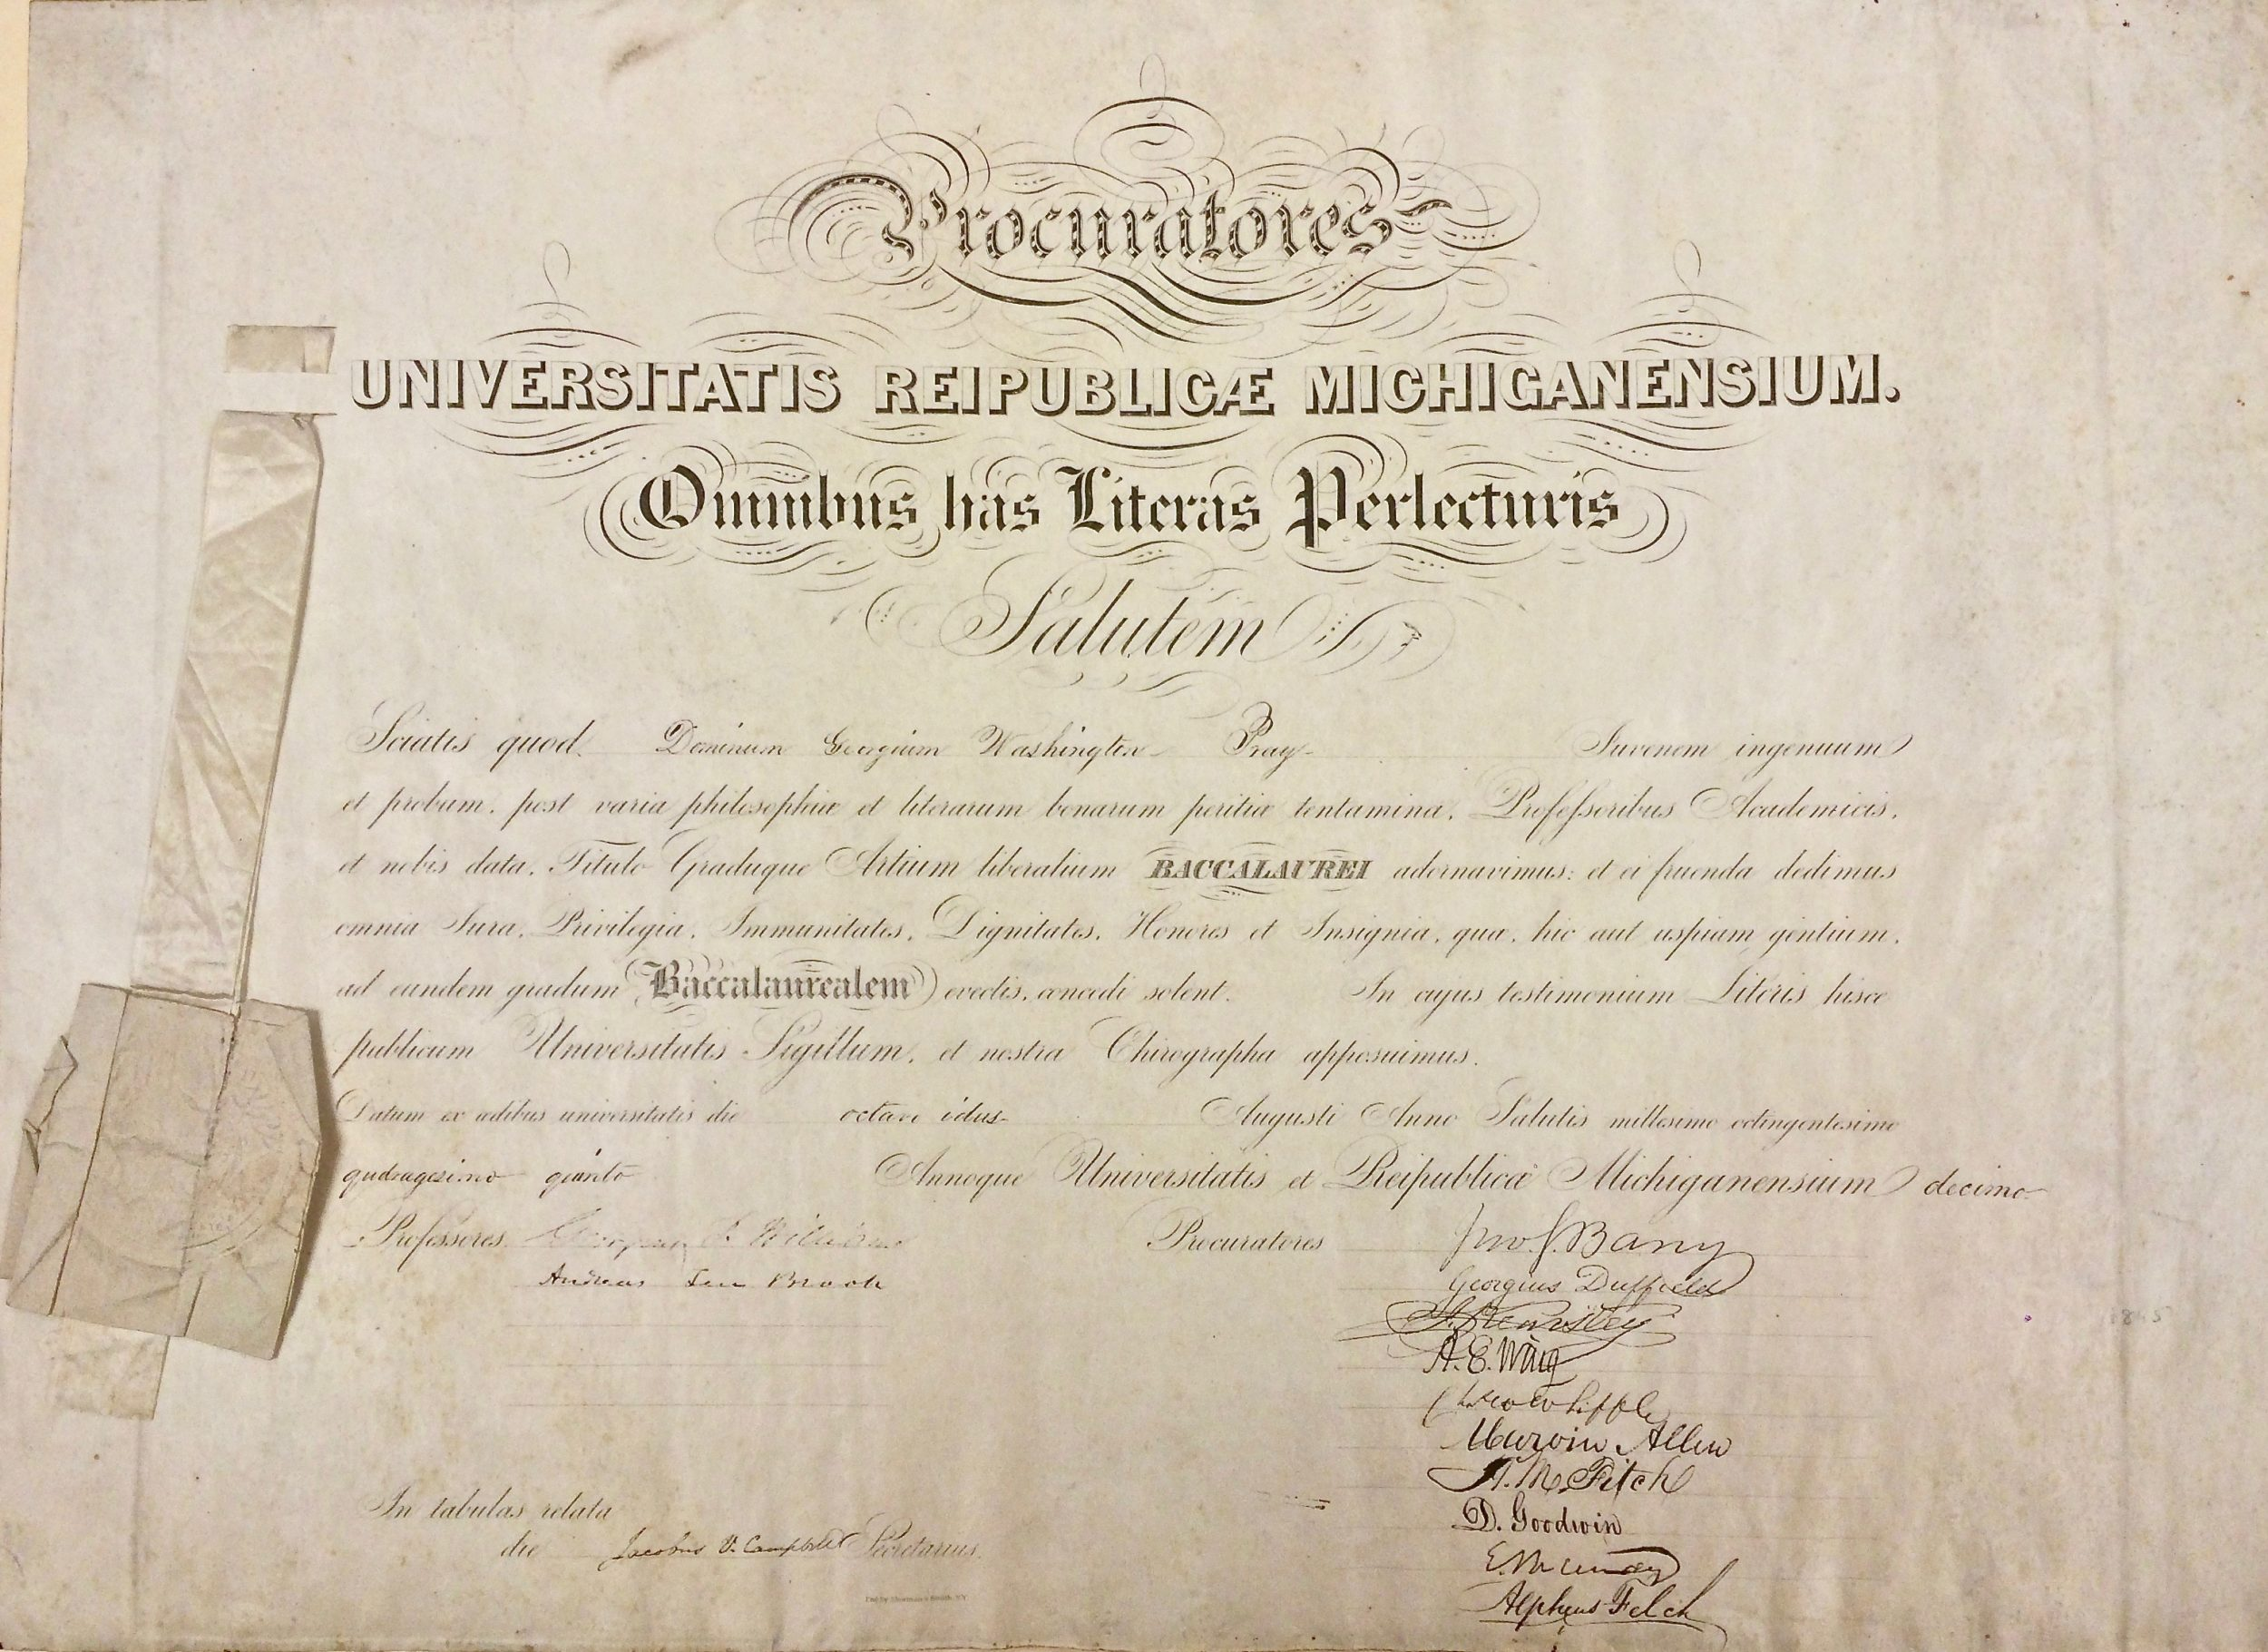 1845 diploma for George Washington Pray